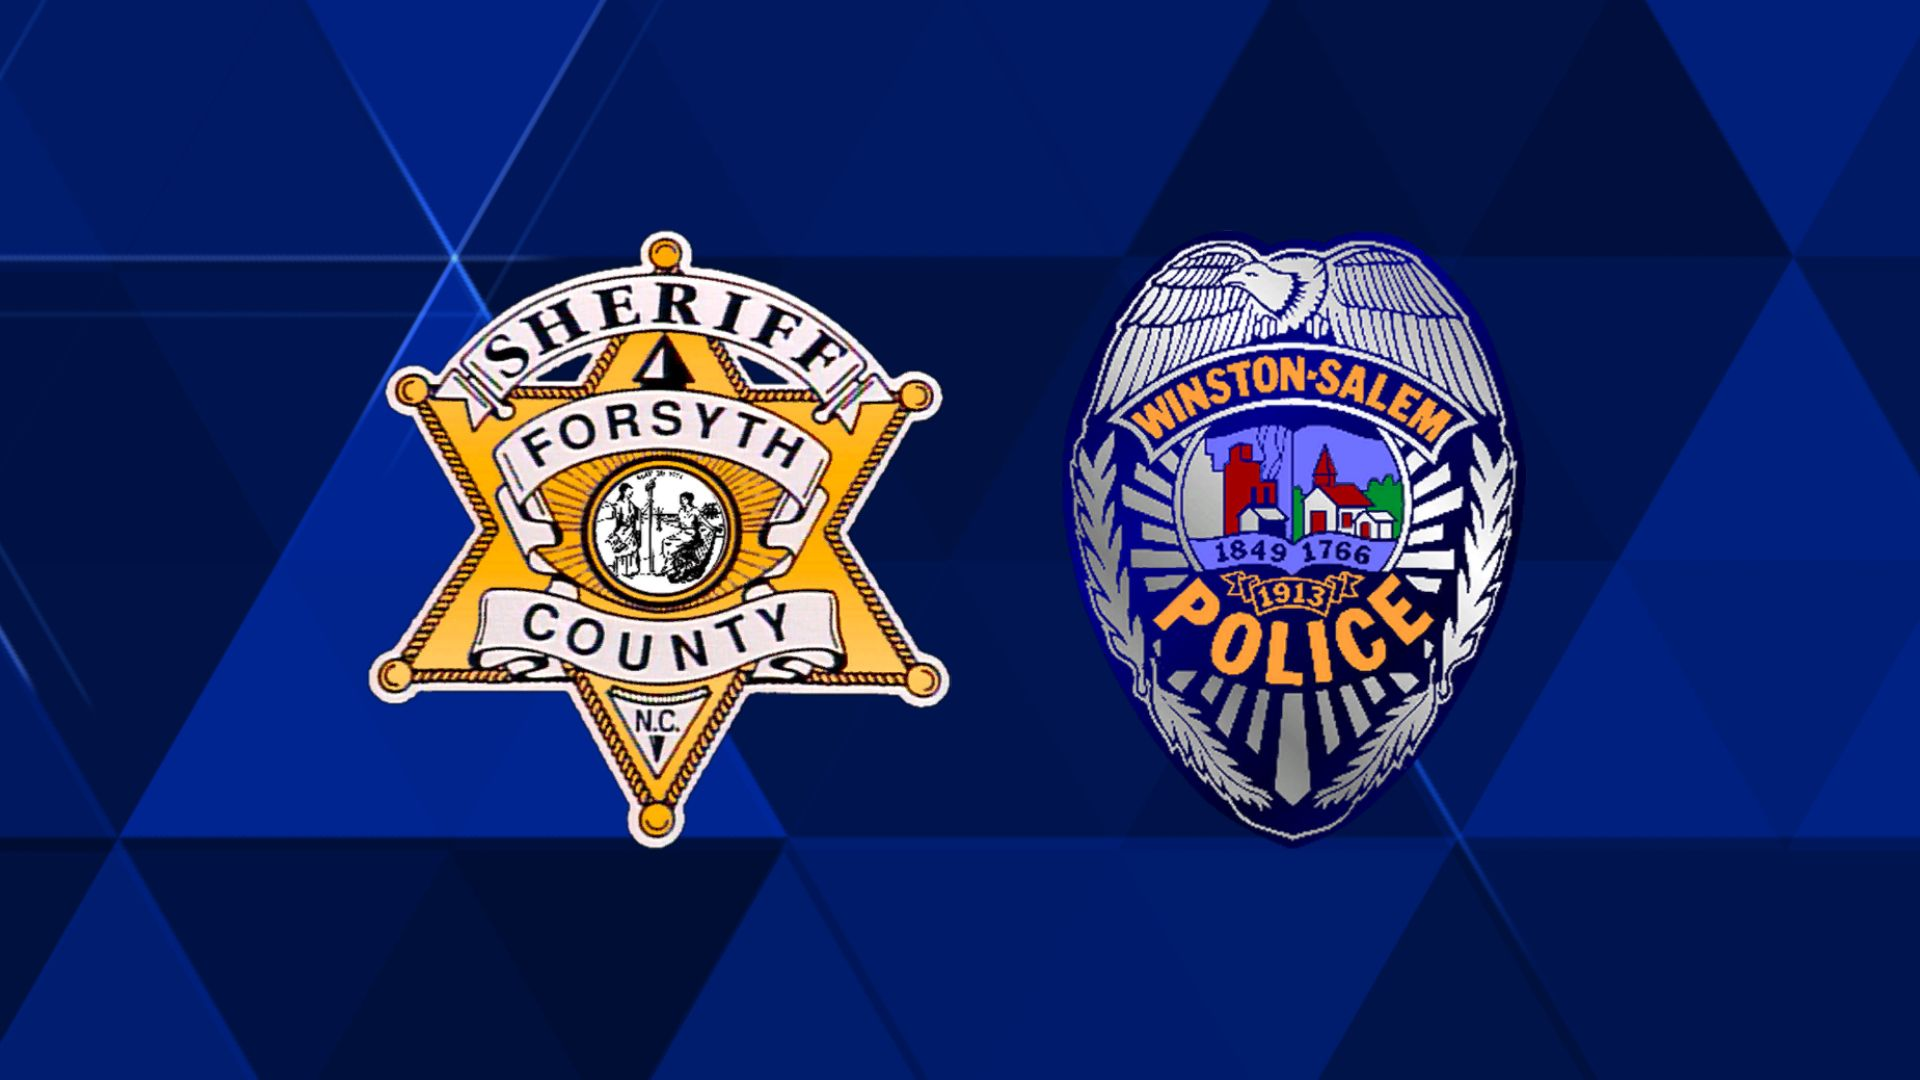 WSPD, FCSO to play in charity softball game